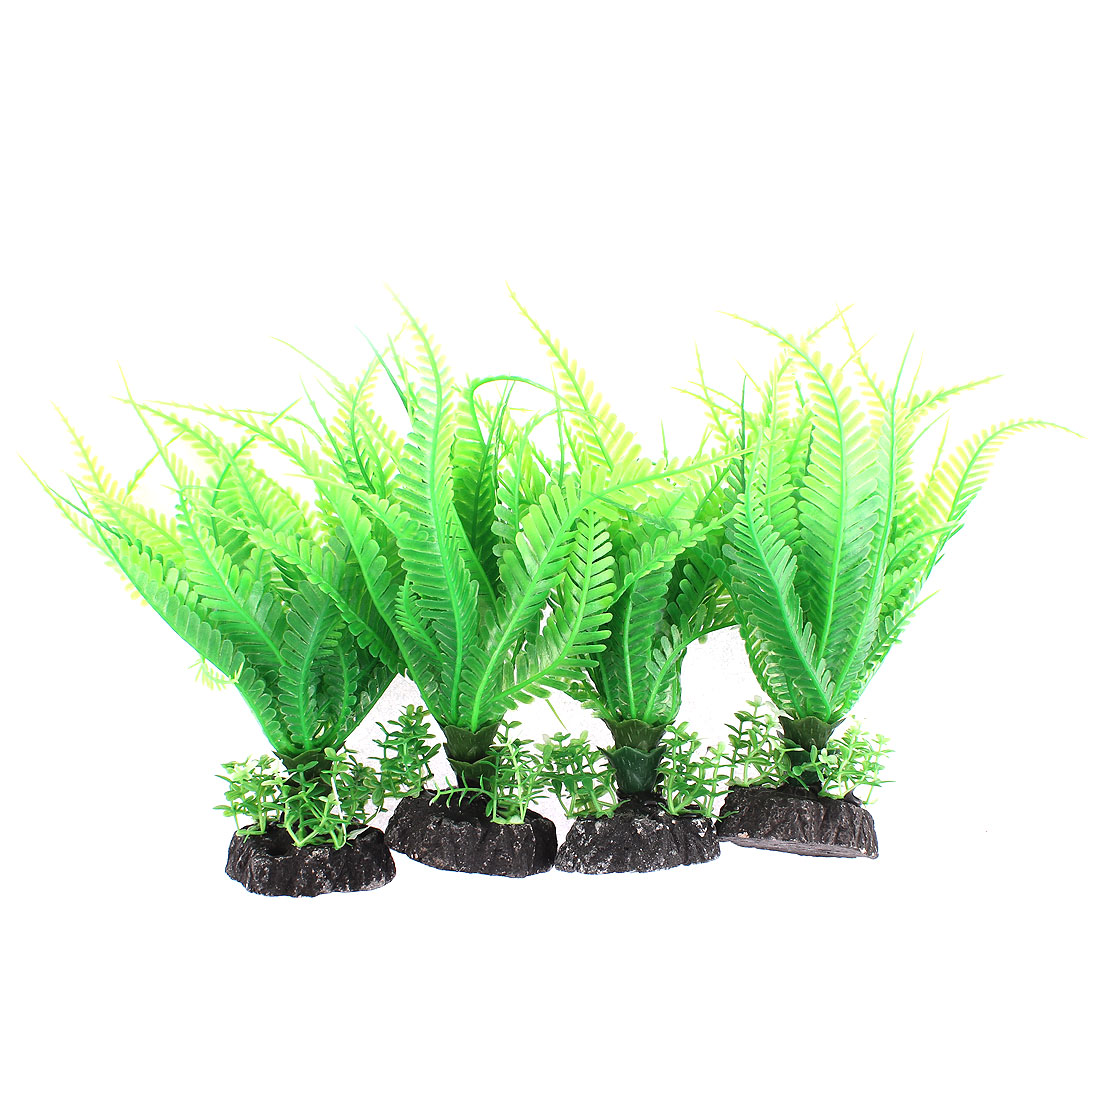 Aquarium Plastic Artificial Underwater Plant Landscape Grass Decor 4pcs